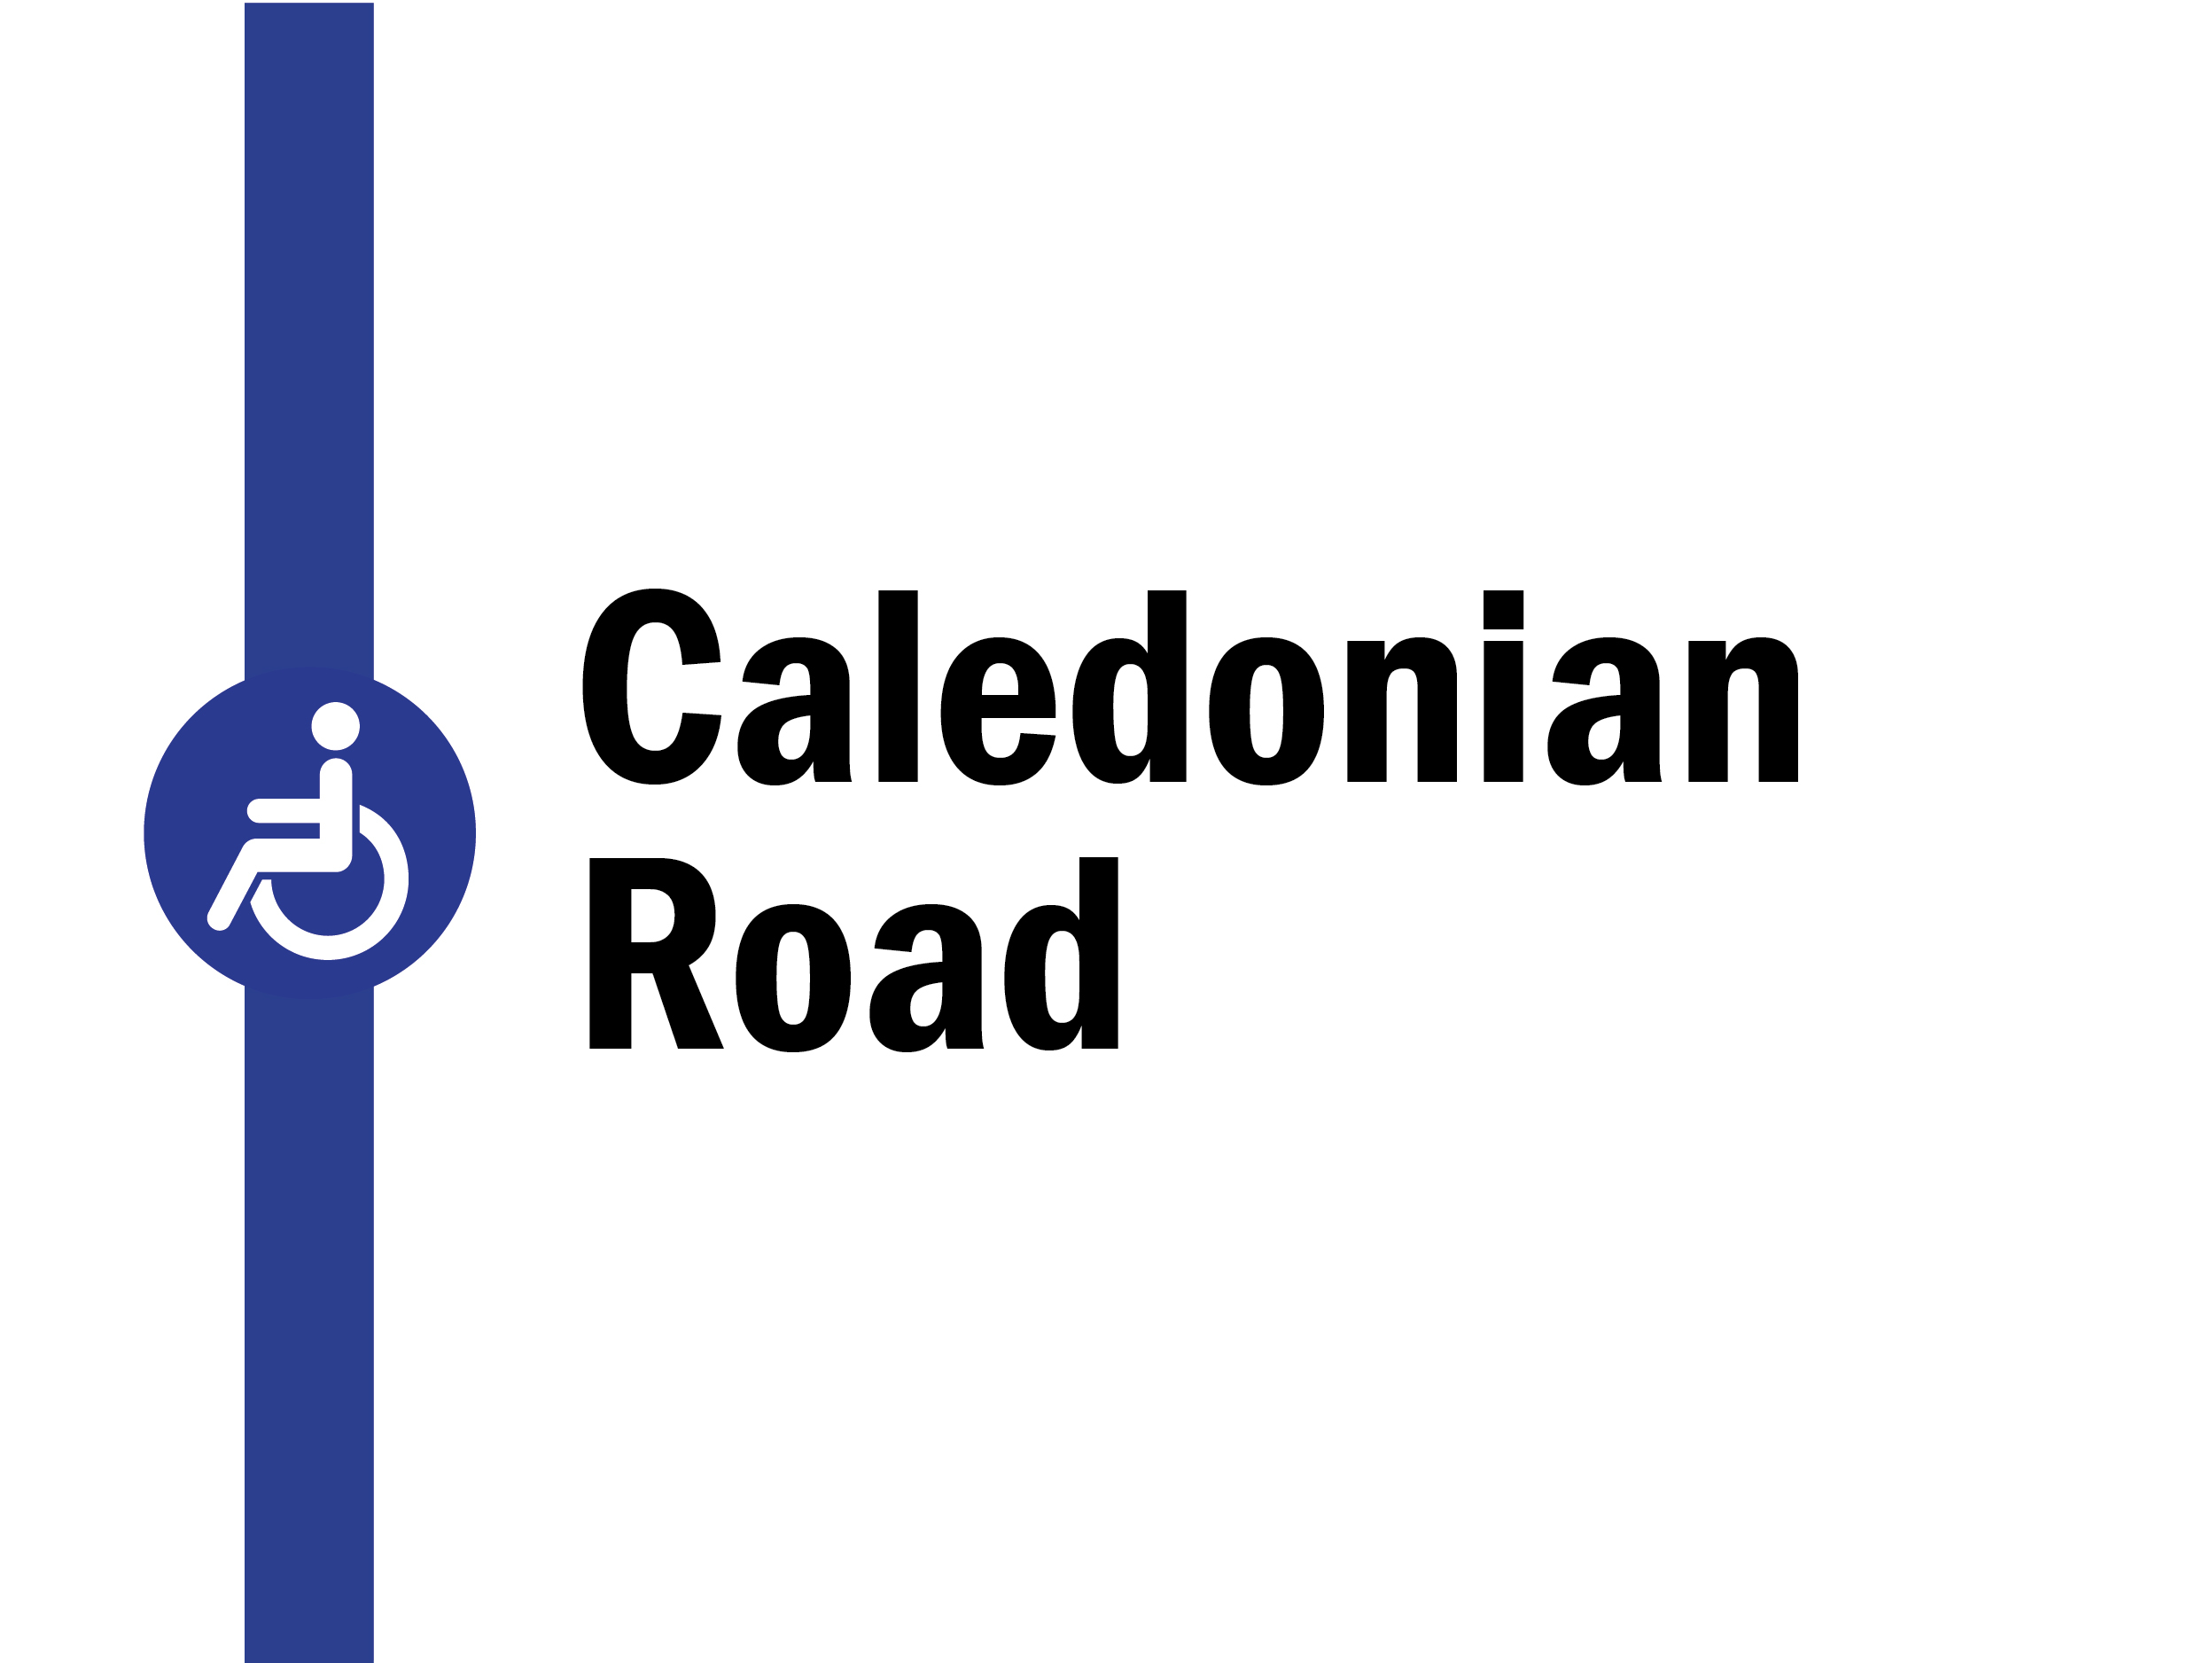 Caledonian Road, Piccadilly Line